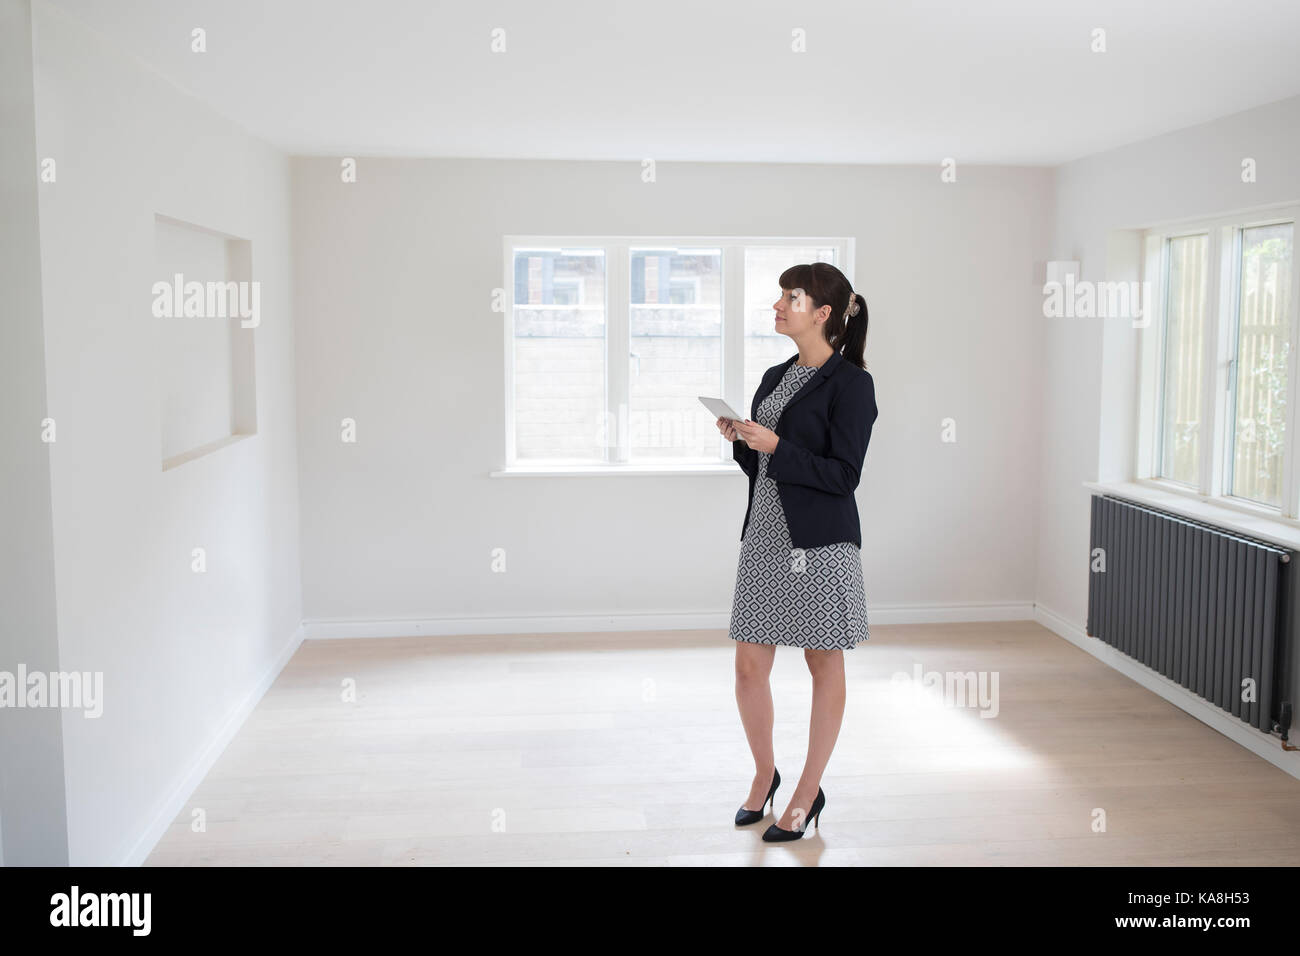 Female Estate Agent With Digital Tablet Looking Around Vacant Property For Valuation Stock Photo